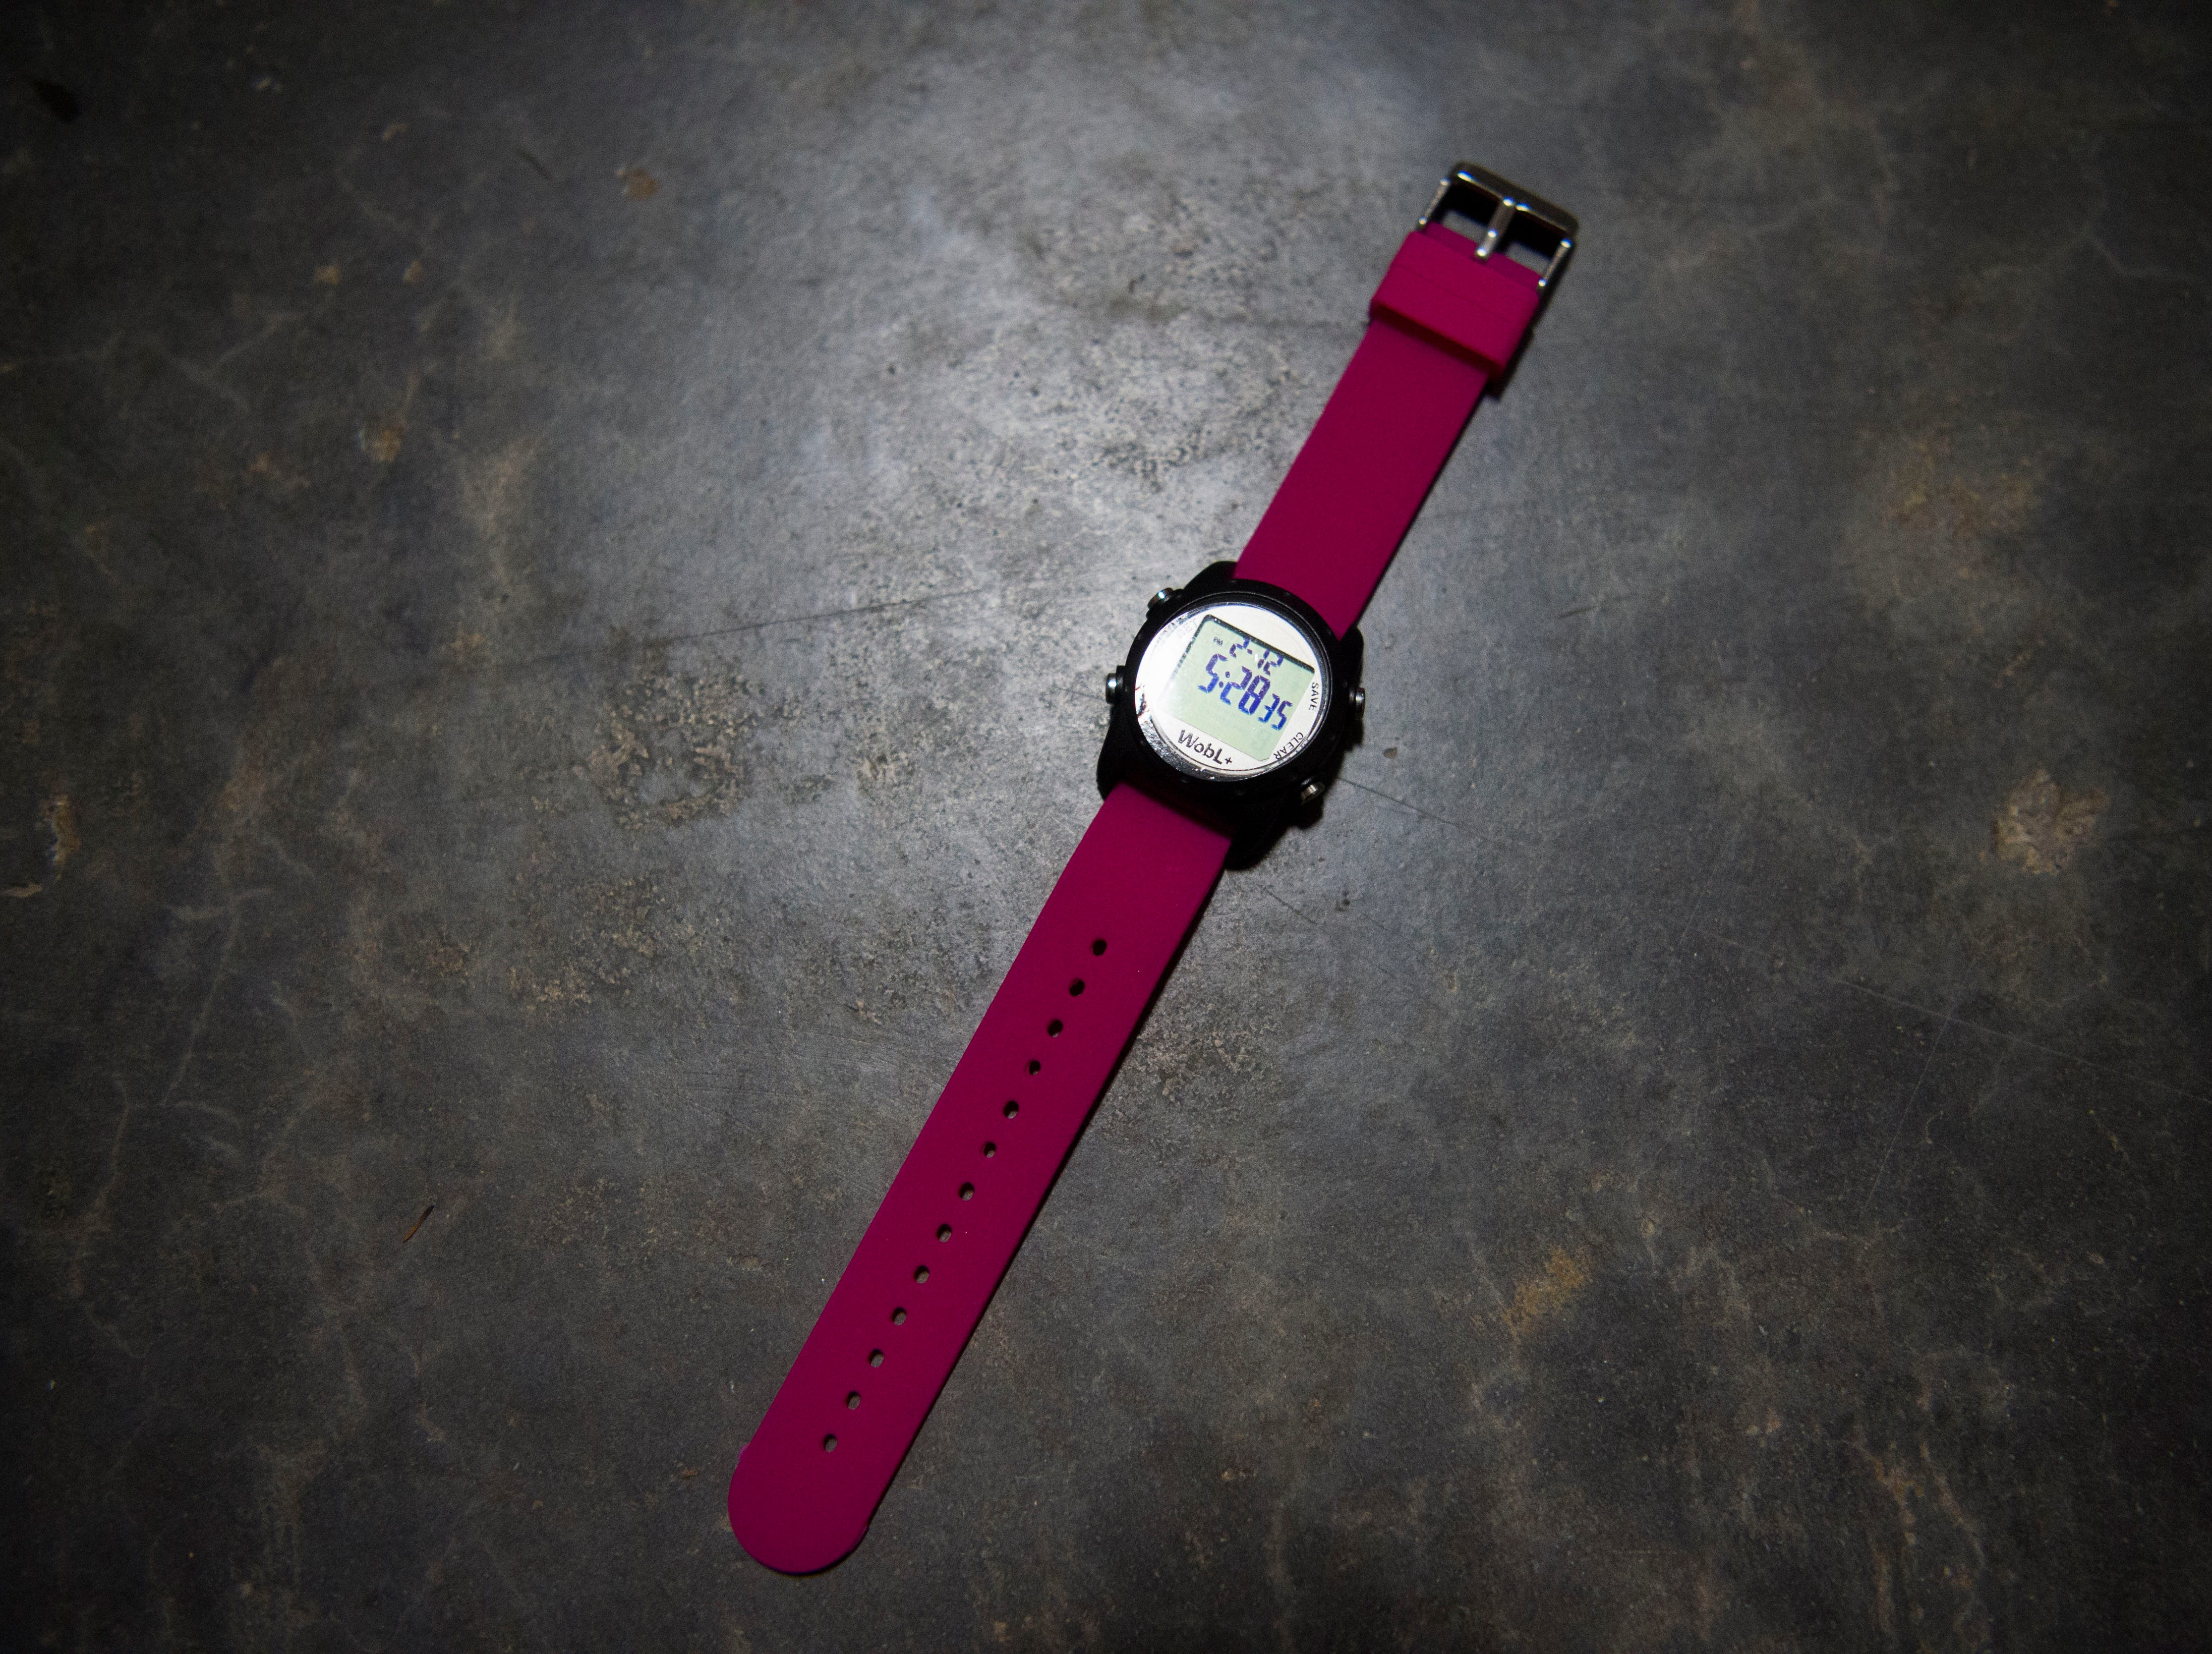 A photo of the WobL+ Watch at PottyMD in West Knoxville Tuesday, Feb. 12, 2019. The local company manufactures watches to help potty train children and other members of the population.